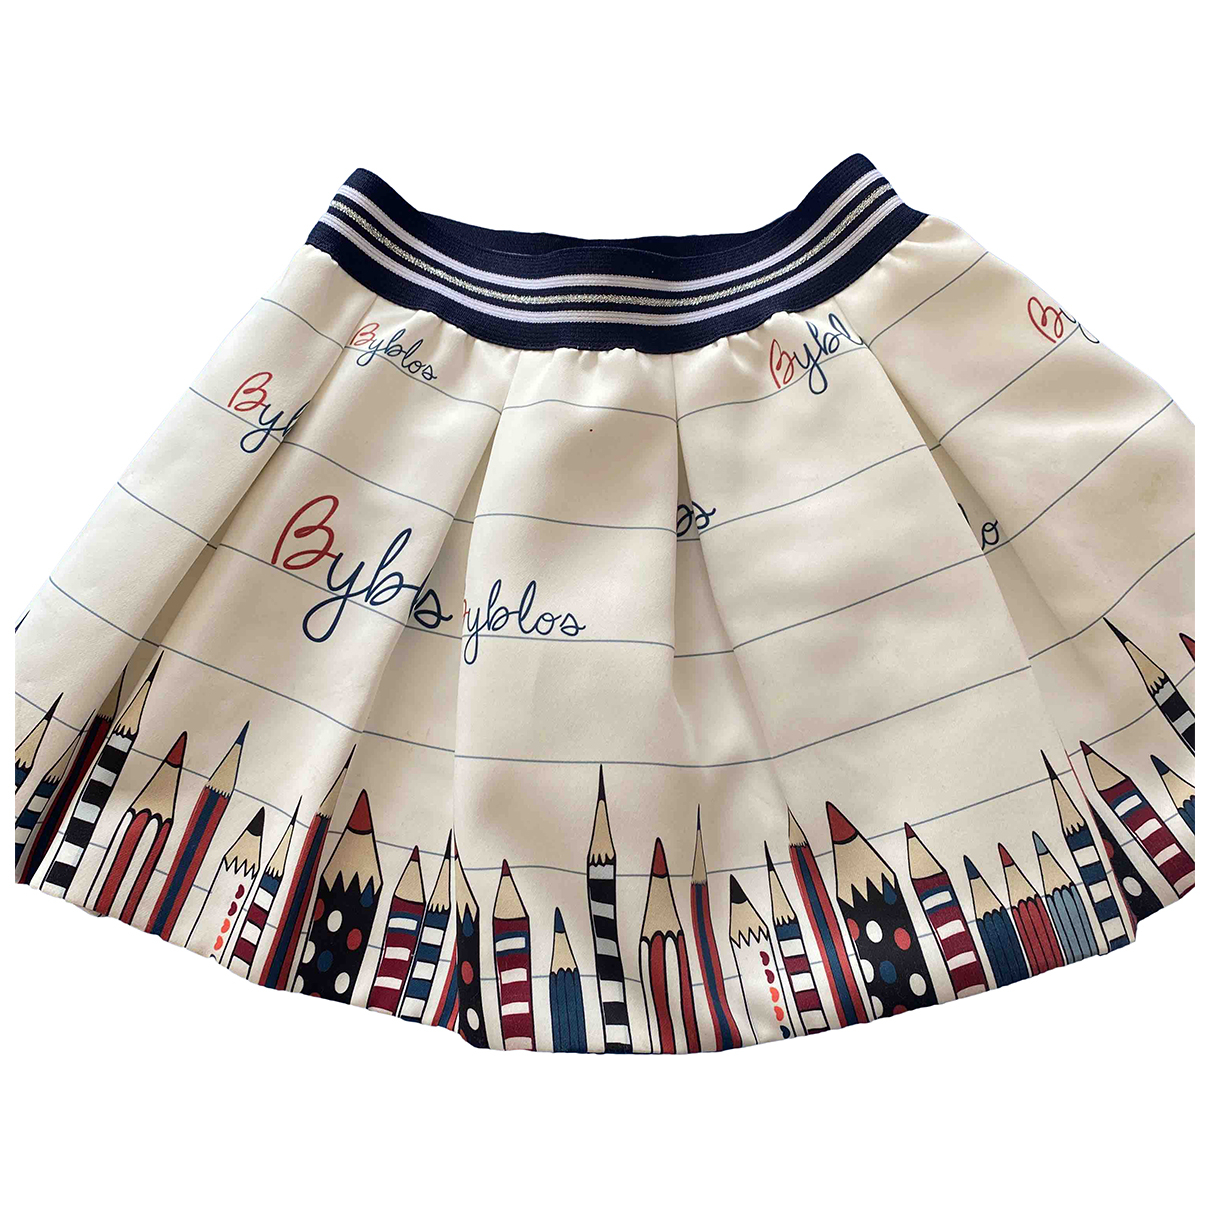 Byblos N White skirt for Kids 4 years - up to 102cm FR